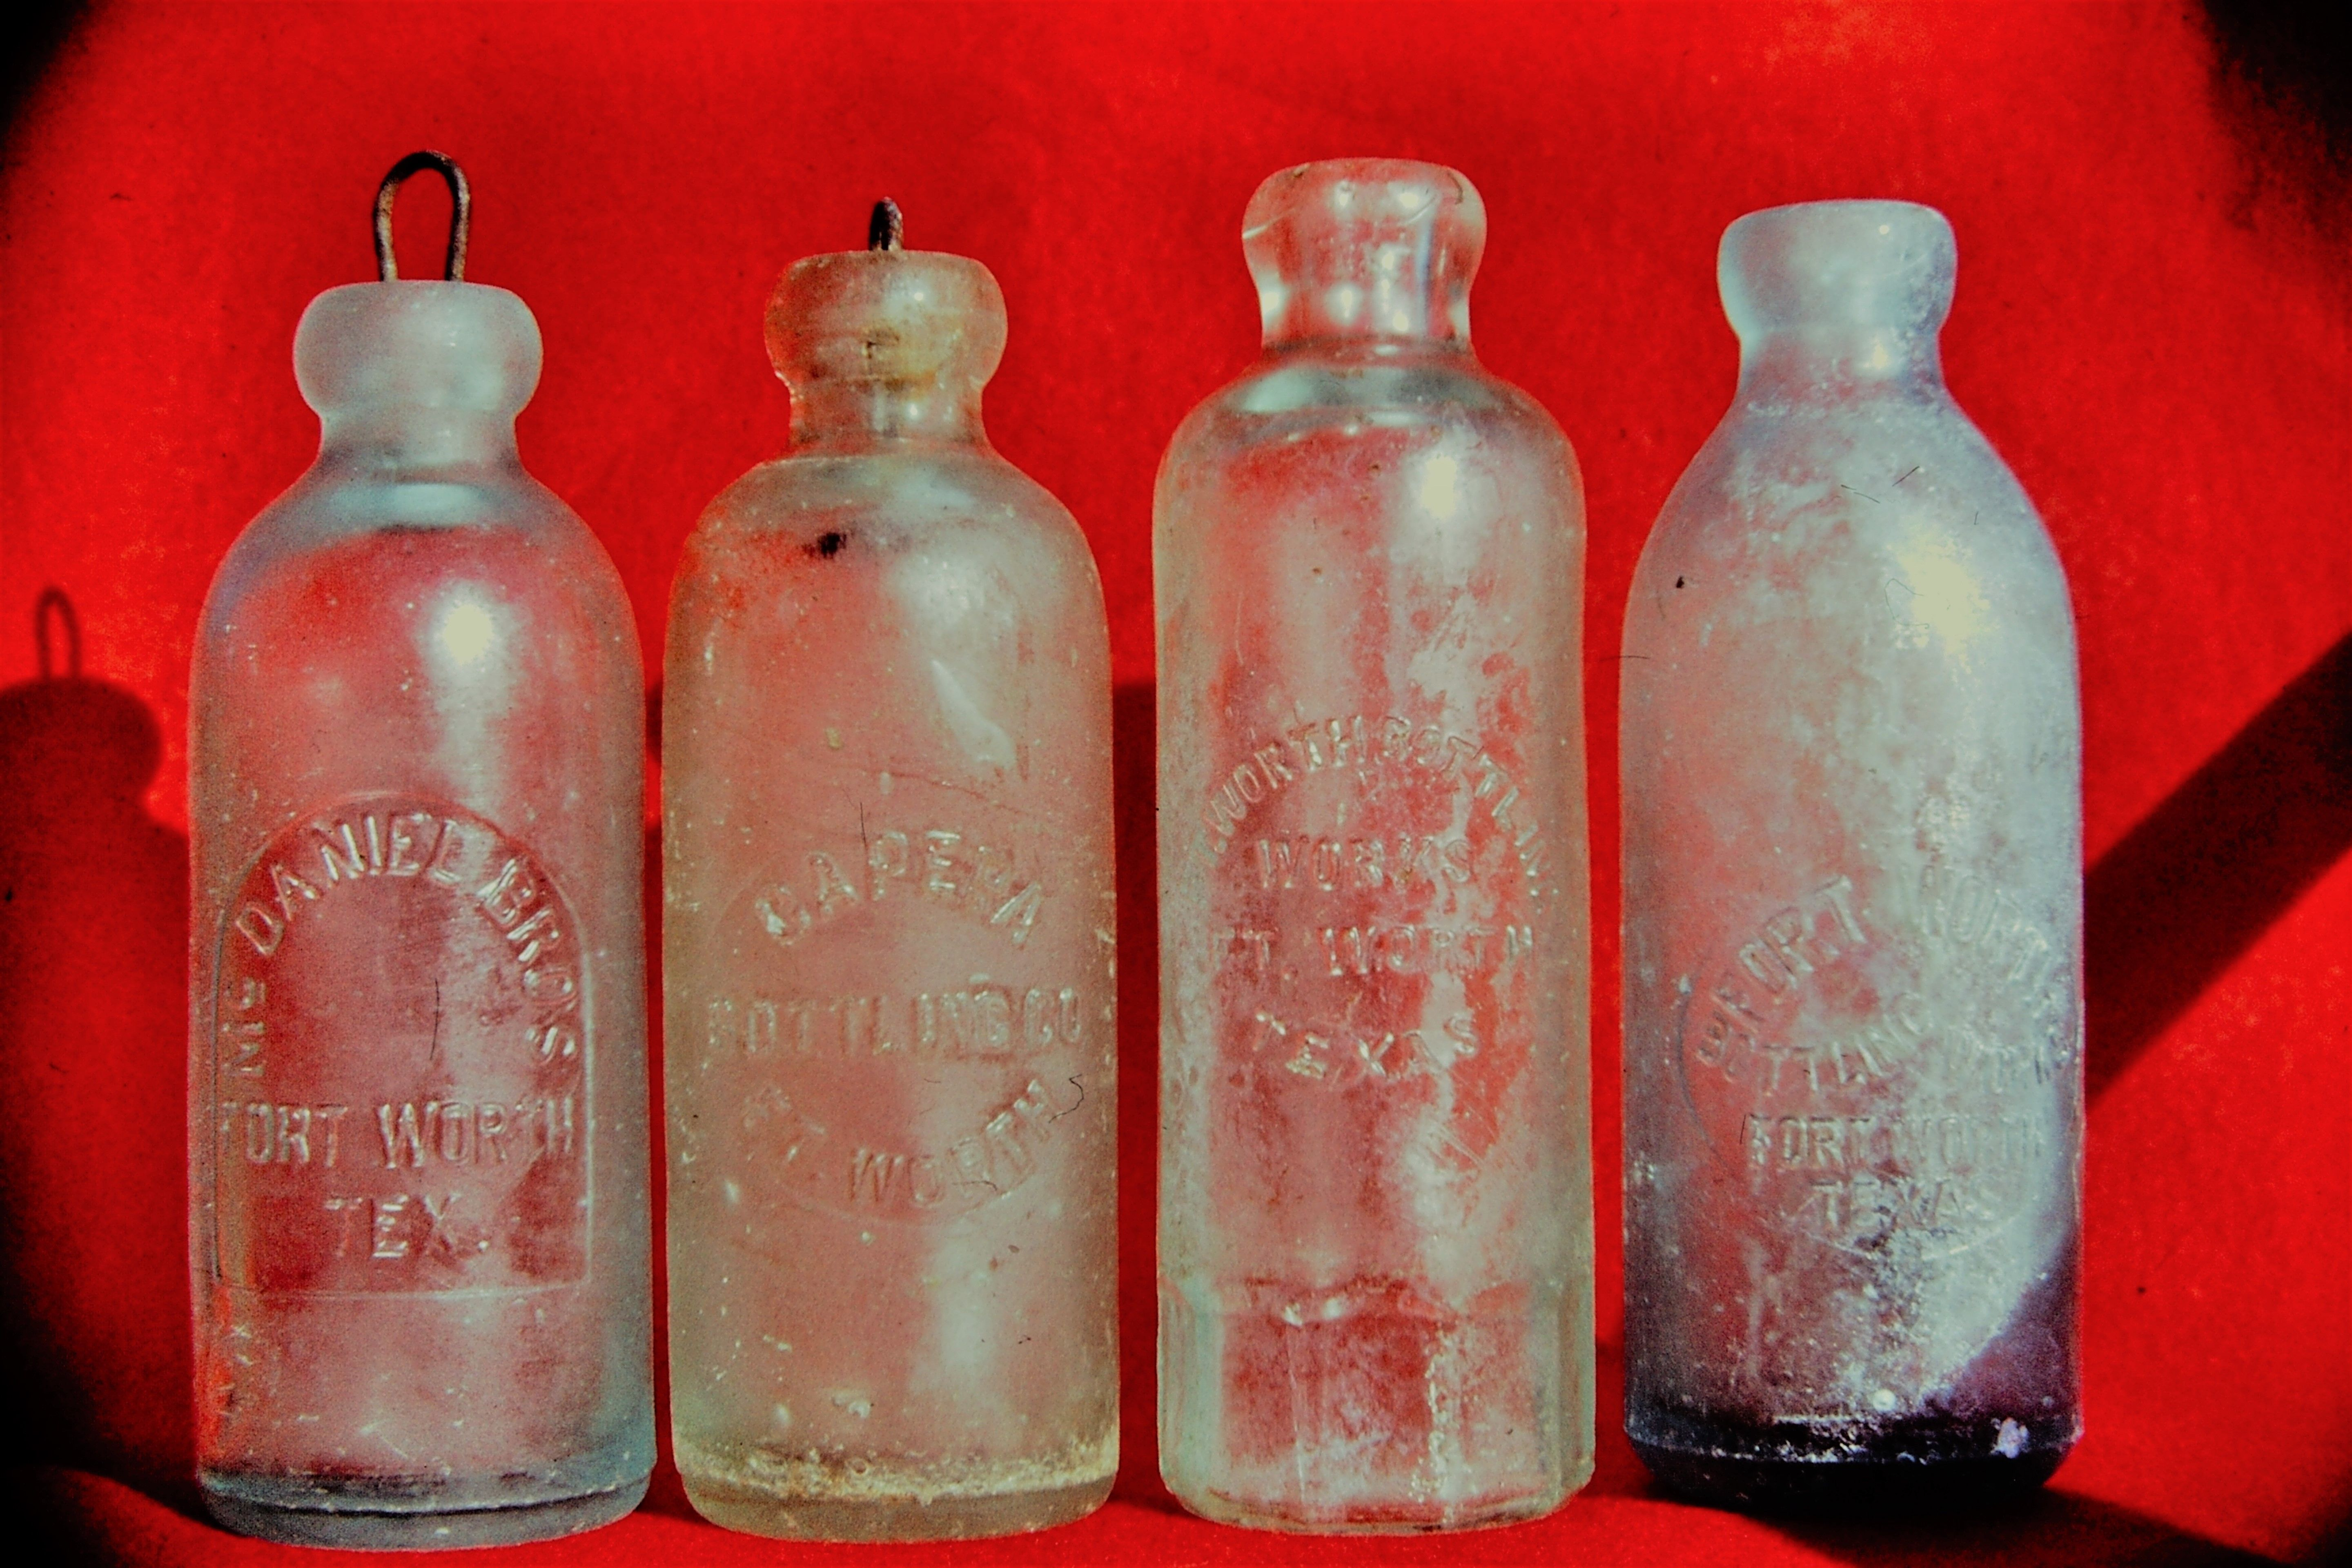 Ft. Worth, Texas, USA ..Hutchinson top soda bottles from late 1800s, Capera, McDaniels, Ft. Worth Bottling Works, etc. from my collection